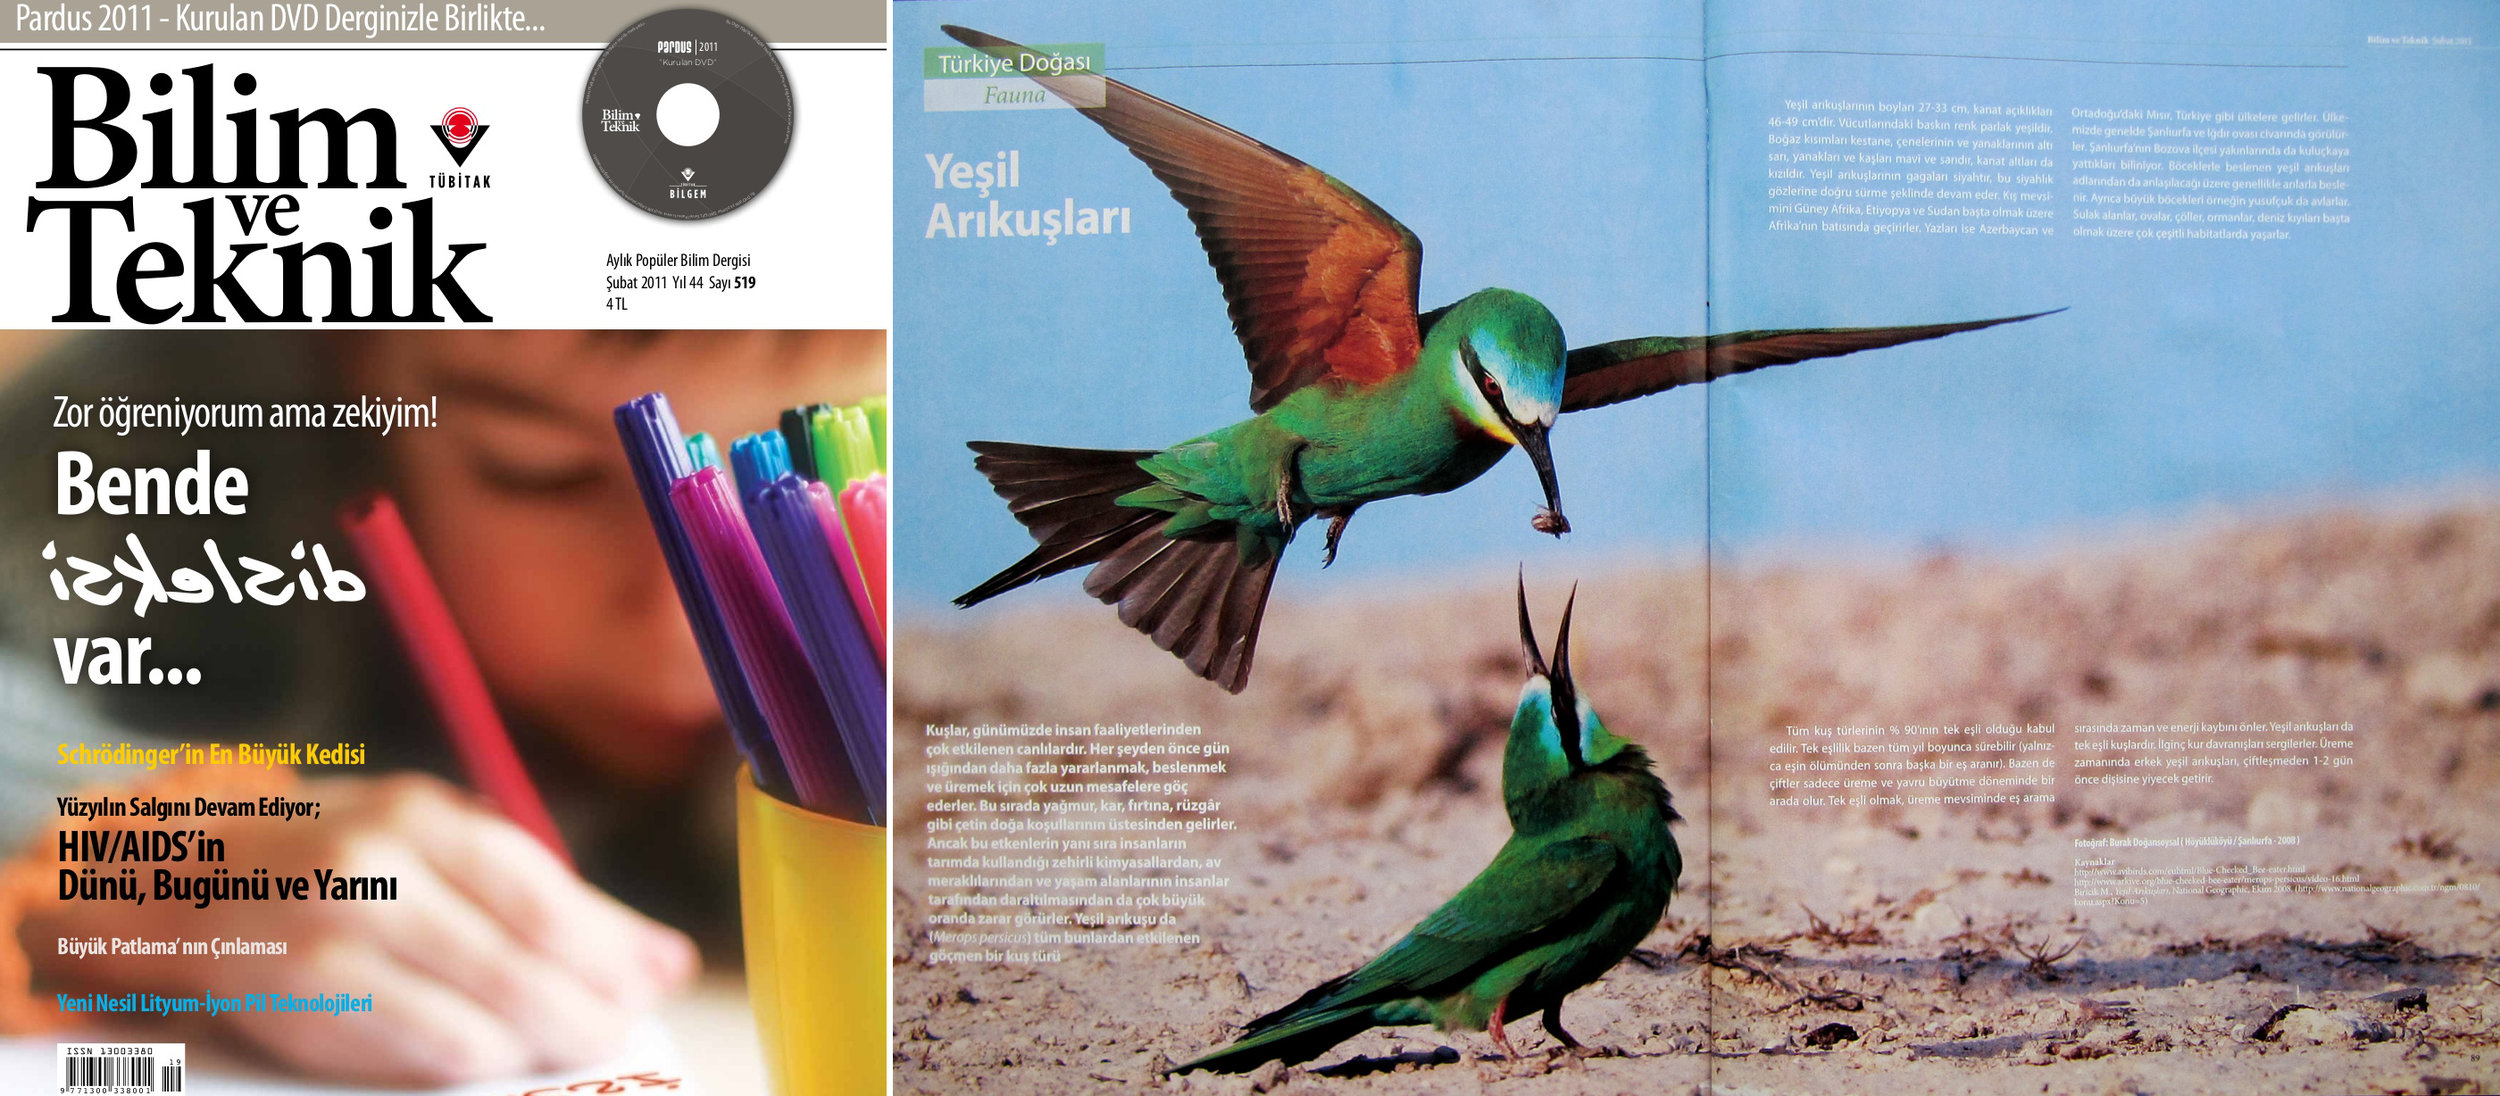 "Bilim ve Teknik Issue #519  [Science & Technology]  February 2011   ""Blue-cheeked Bee-eaters"" Photo by Burak Dogansoysal"